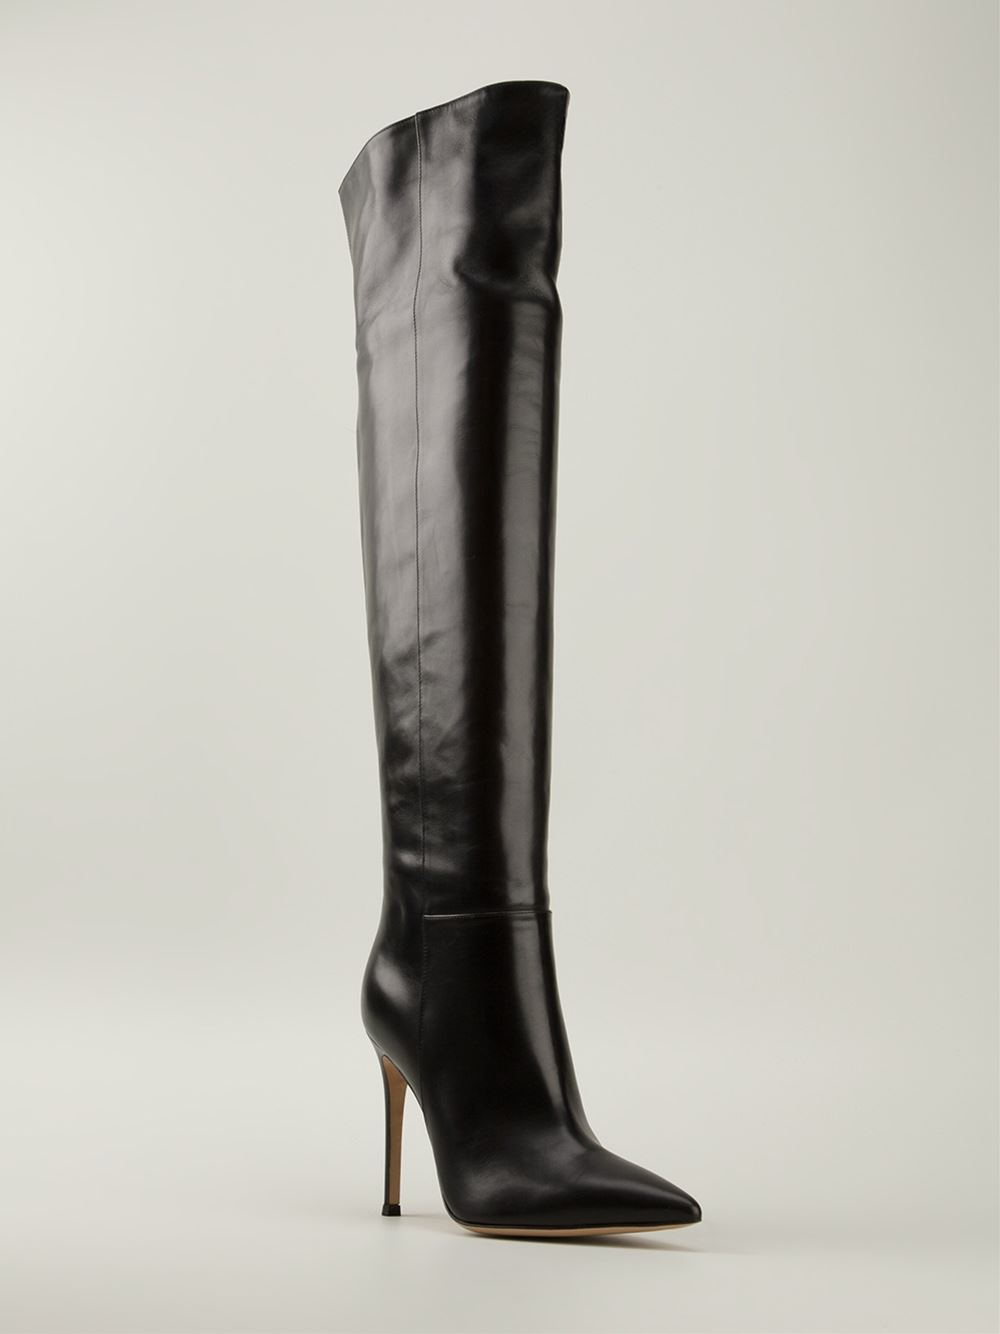 gianvito rossi 39 madison 39 knee high boots in black lyst. Black Bedroom Furniture Sets. Home Design Ideas